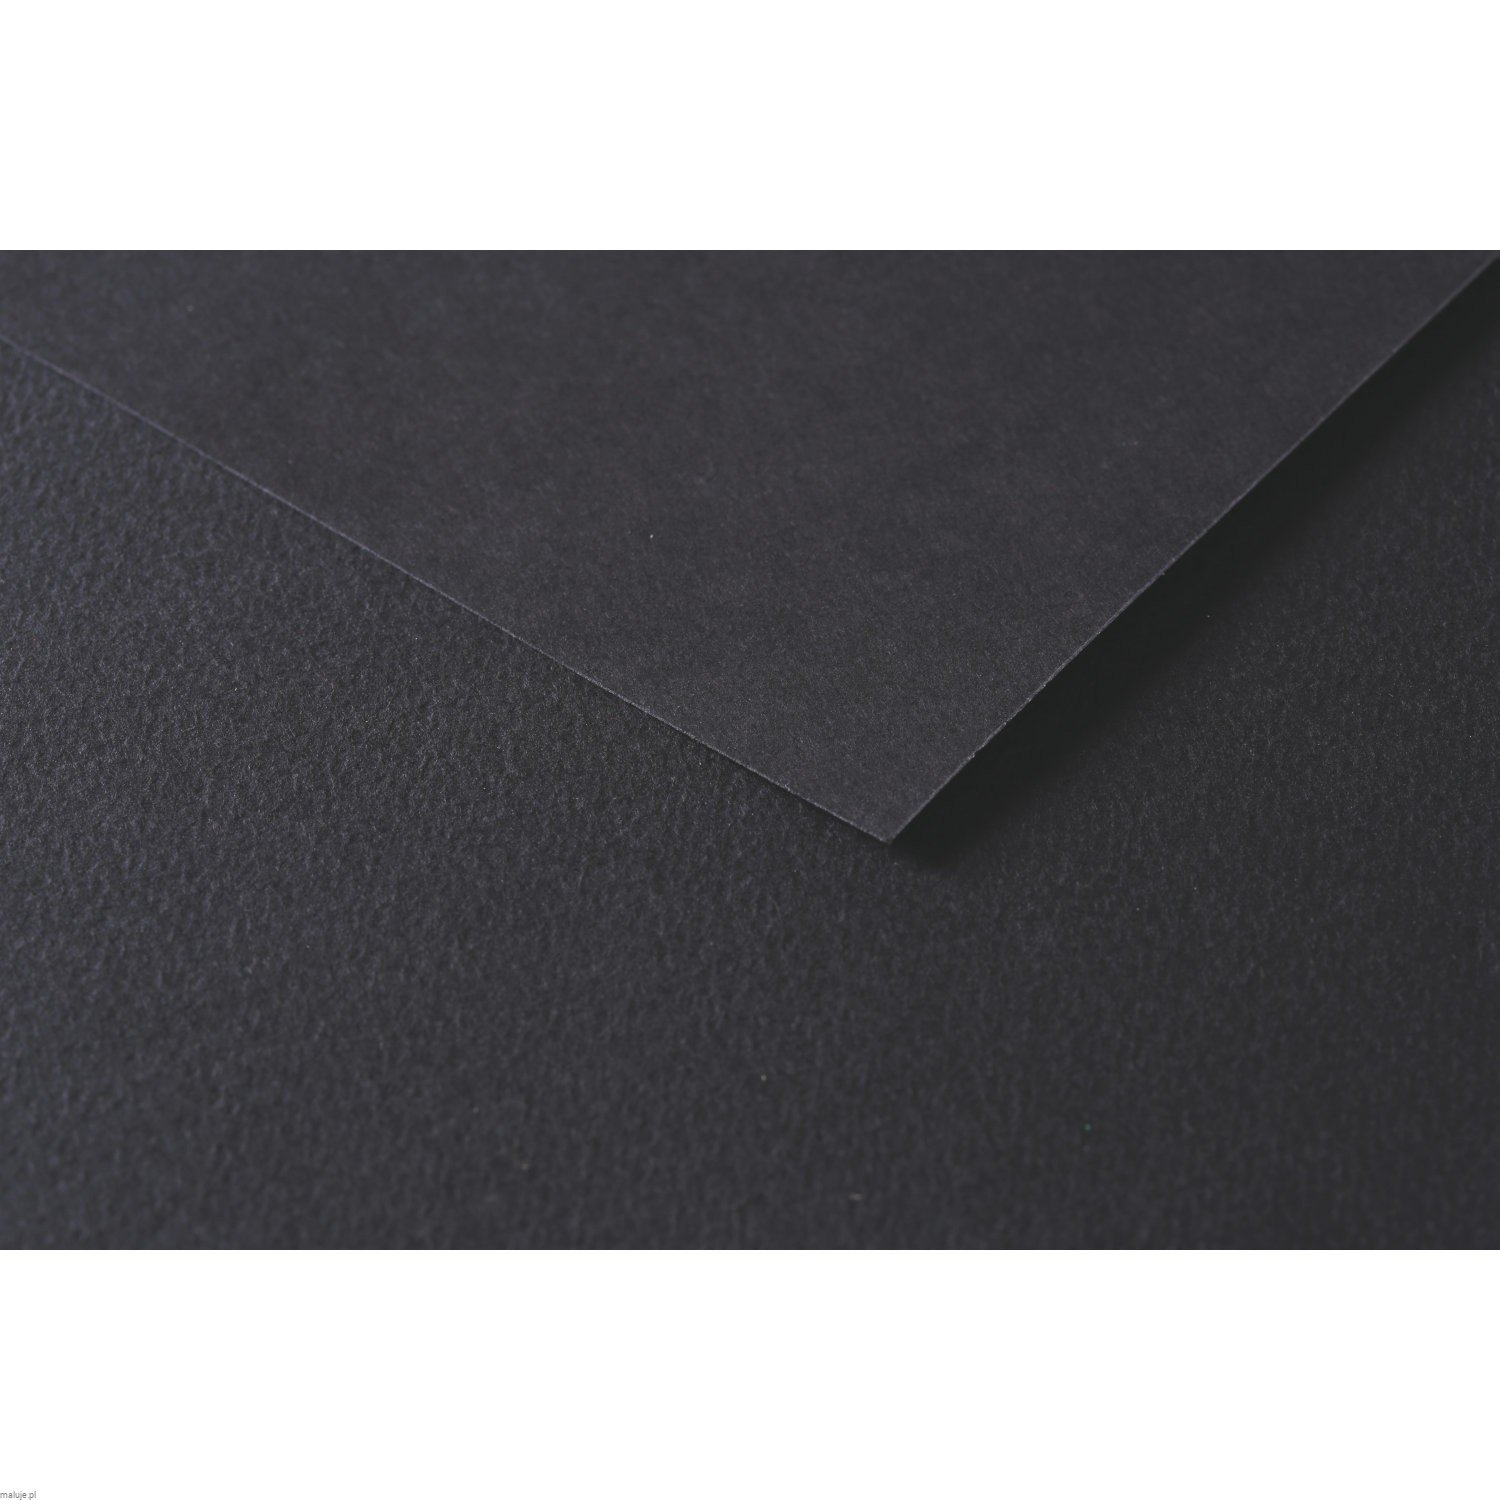 Clairefontaine Tulipe A4 160g Black - karton craft